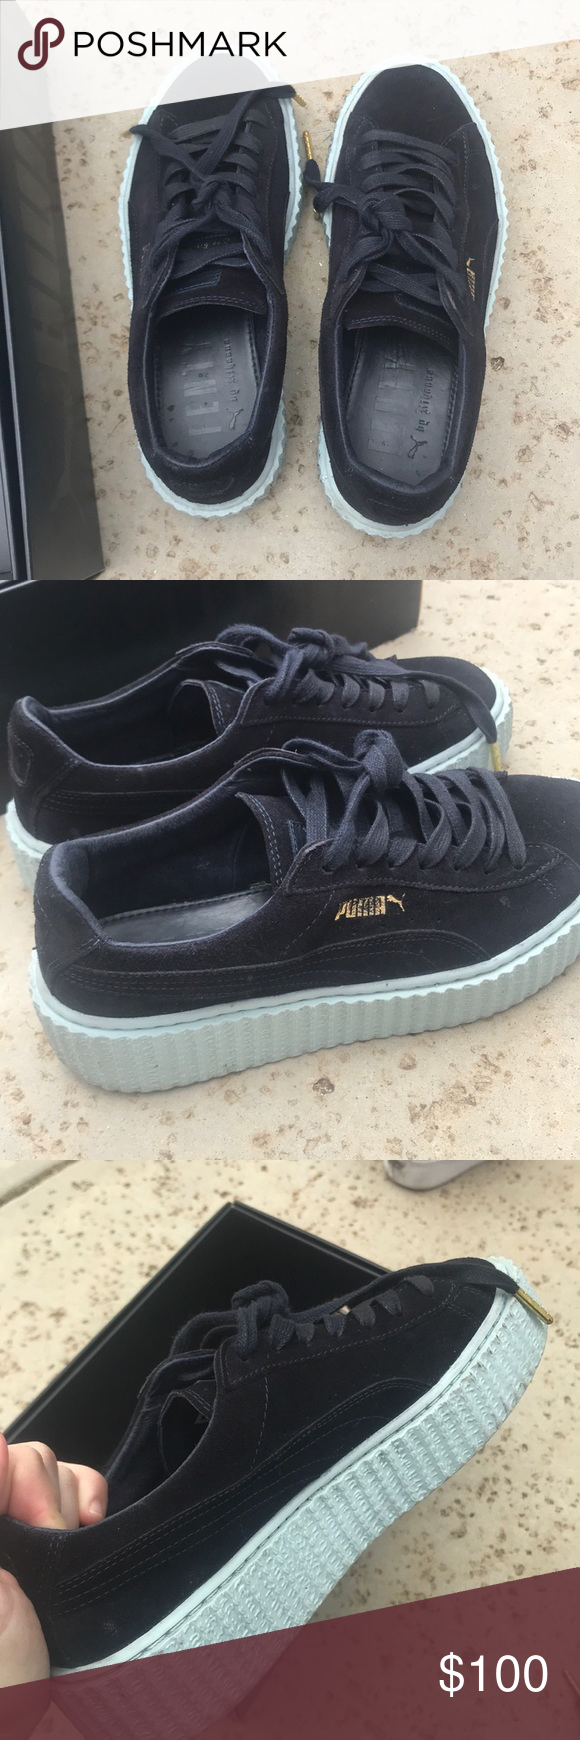 release date 18164 9d389 RIRI CREEPERS FENTY PUMAS. Suede.... box included. Good ...